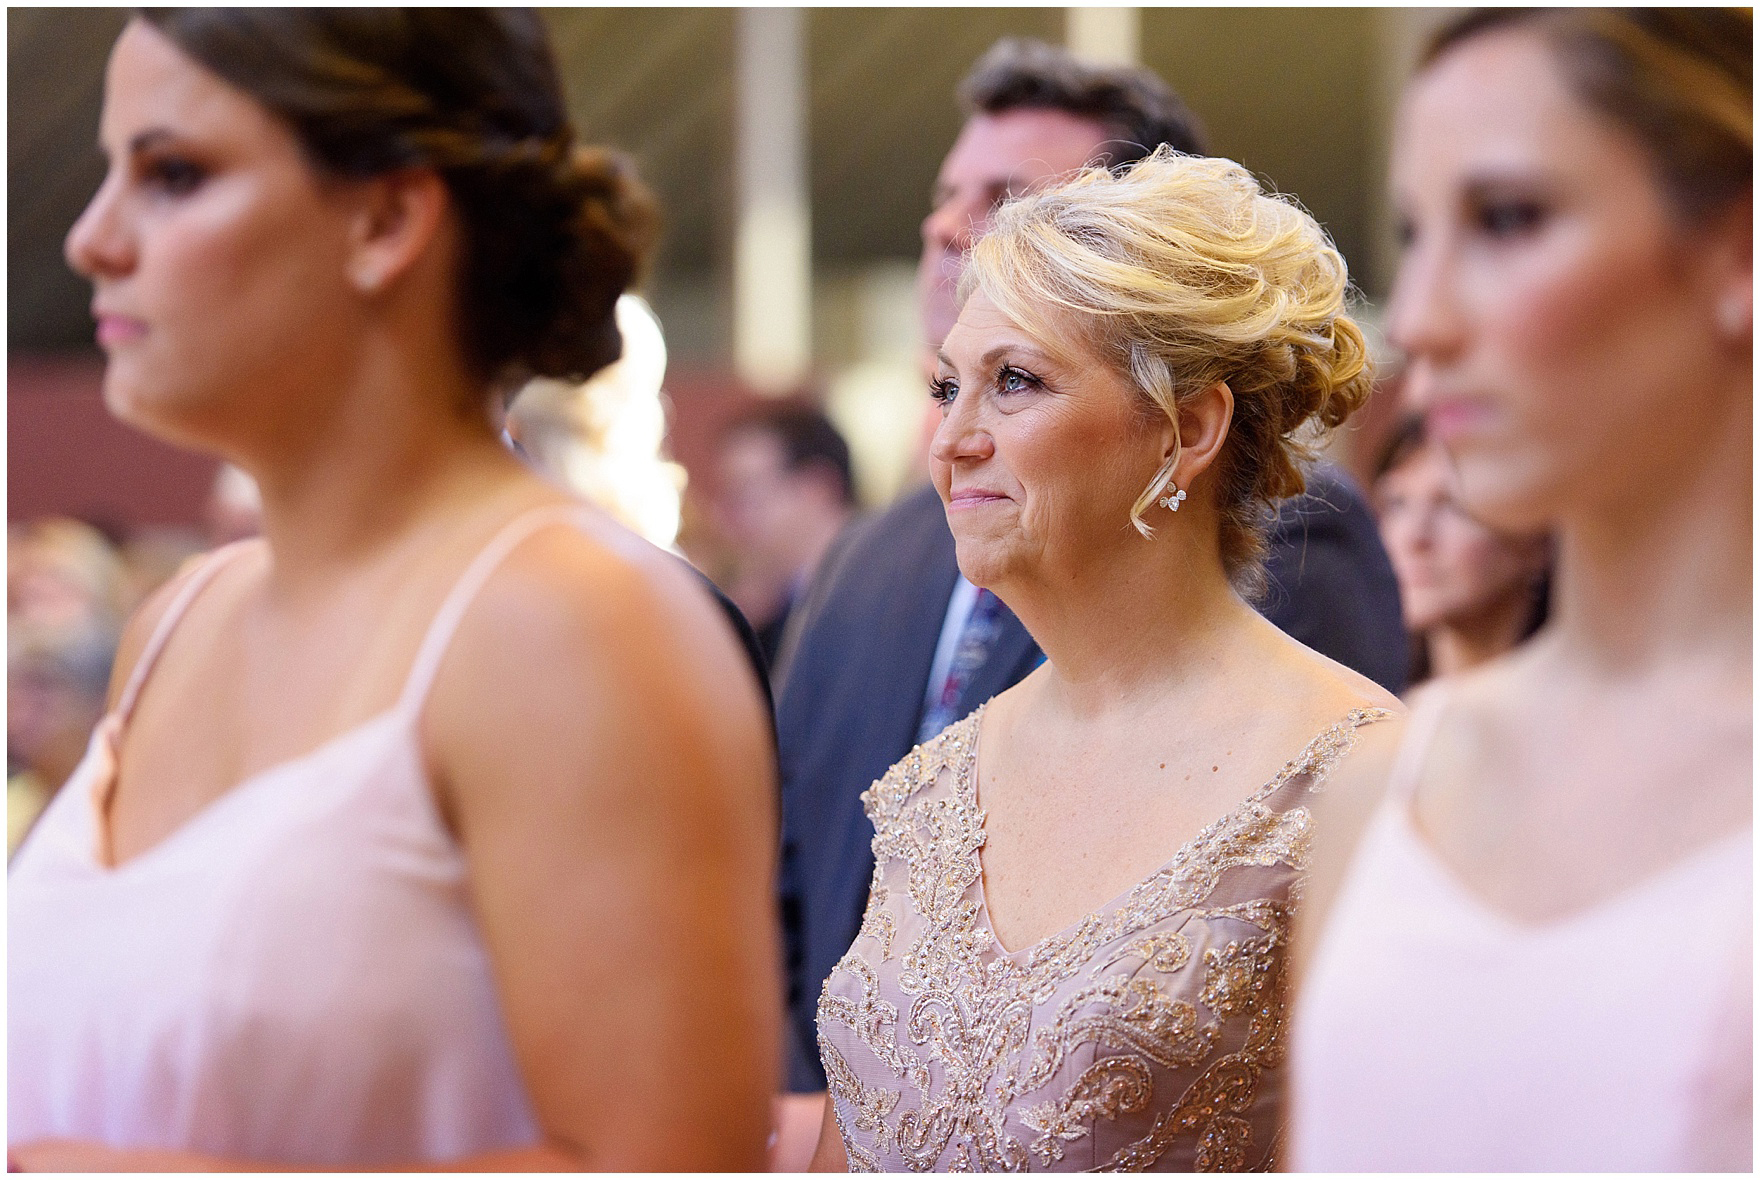 The bride's mother smiles during the ceremony for a St. Josephs Downers Grove Pinstripes Oak Brook, Illinois wedding.